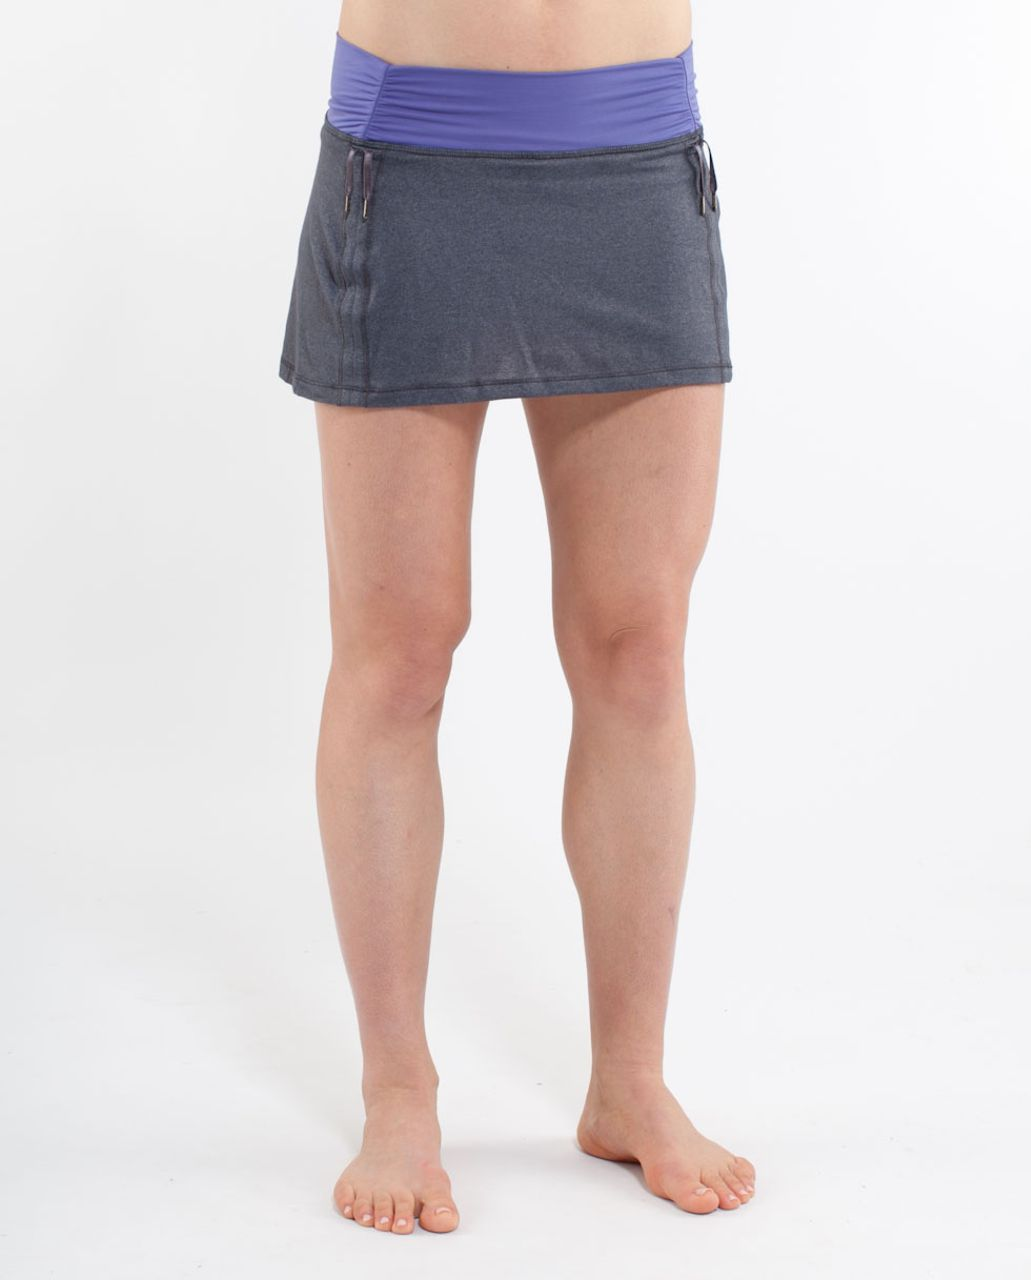 Lululemon Hot 'N Sweaty Skirt - Coal /  Persian Purple